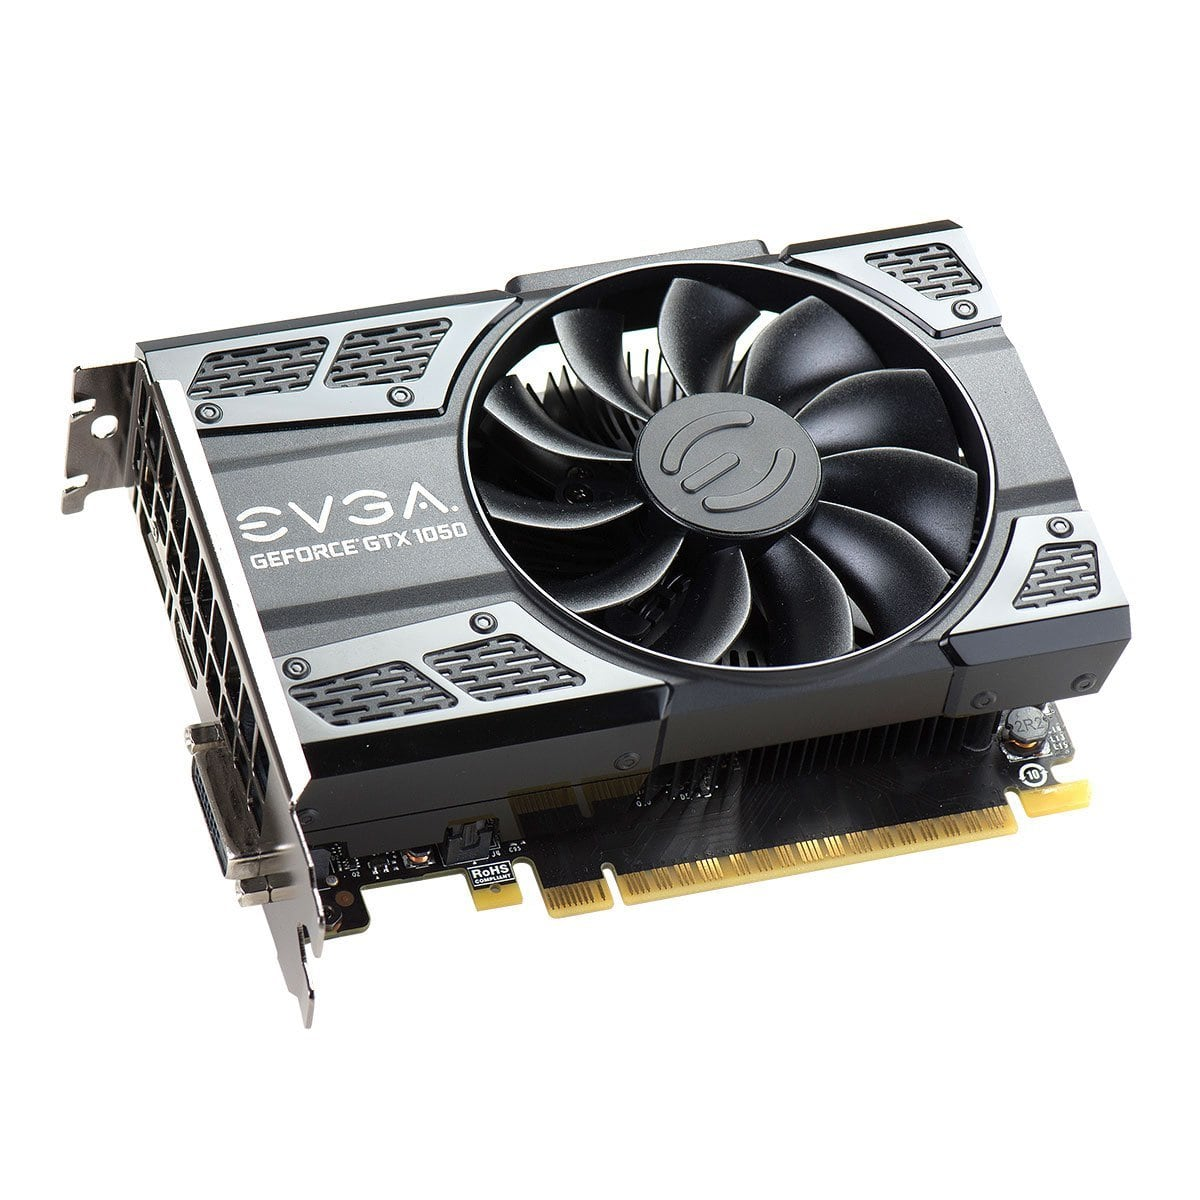 EVGA GeForce 1050 Ti 4gb for $169 if you have Business Amazon account $169.99